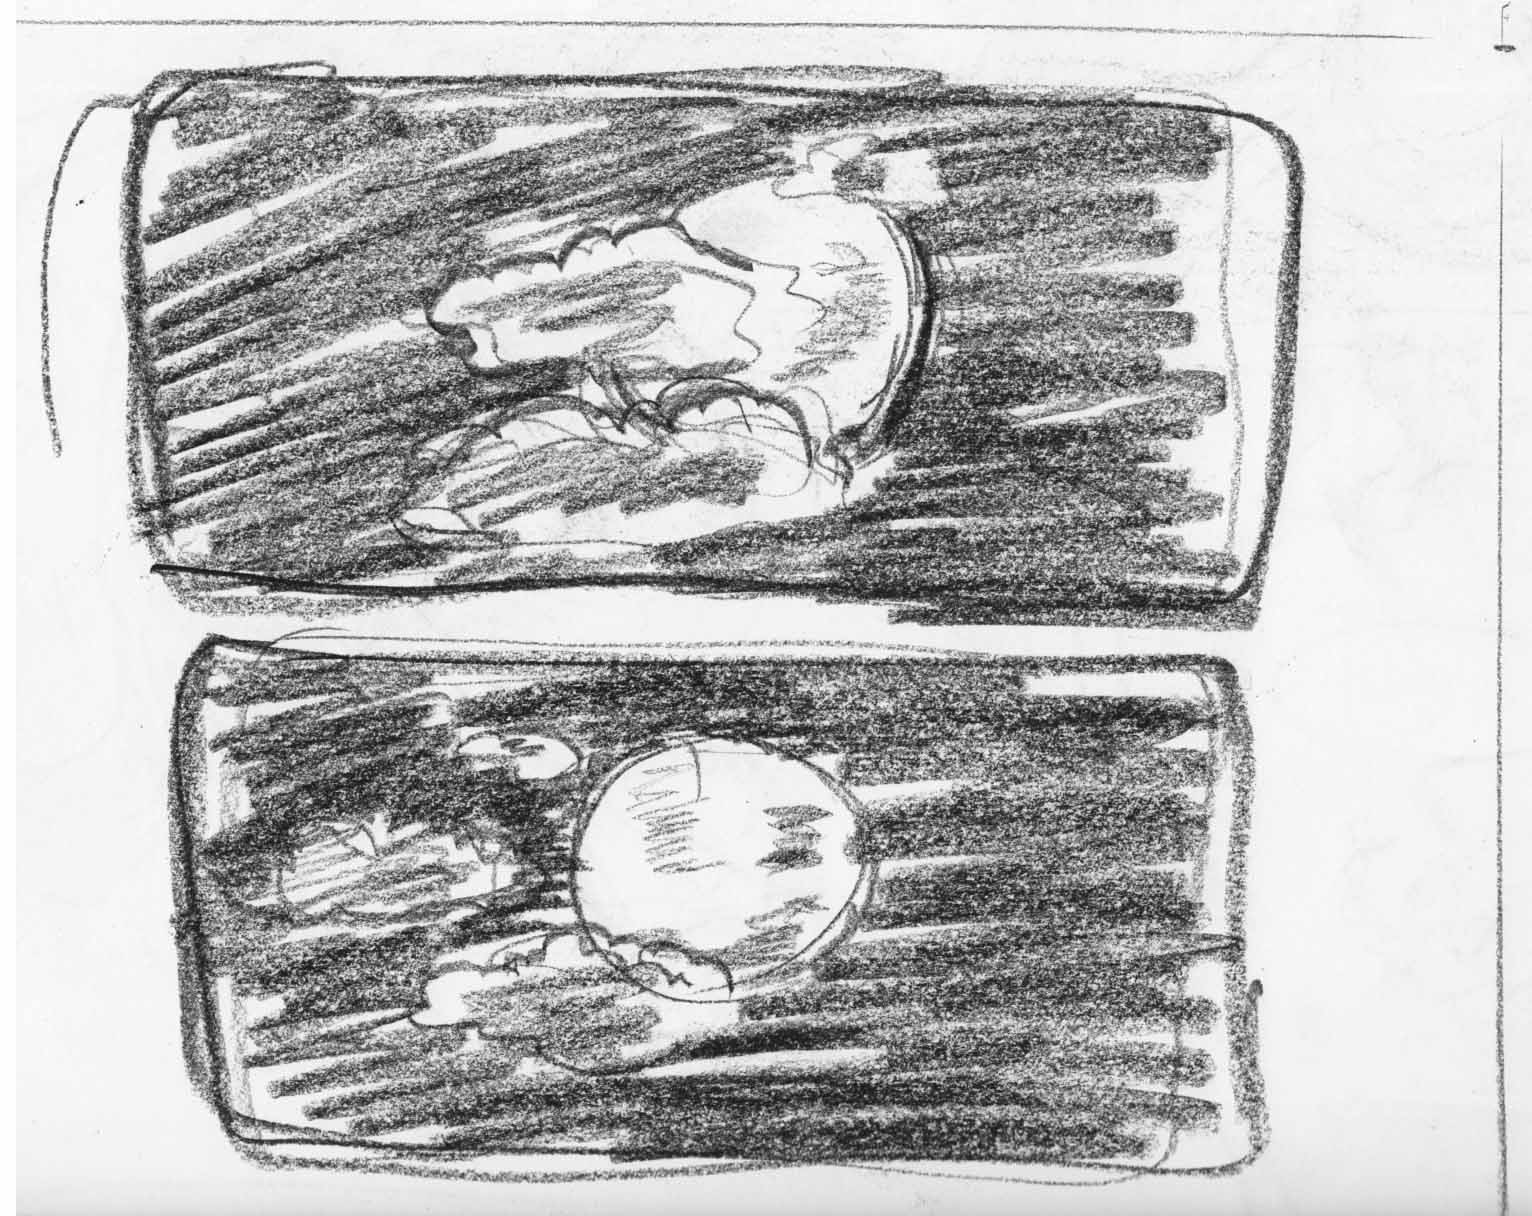 9-15-16-moon-sequence-sketch